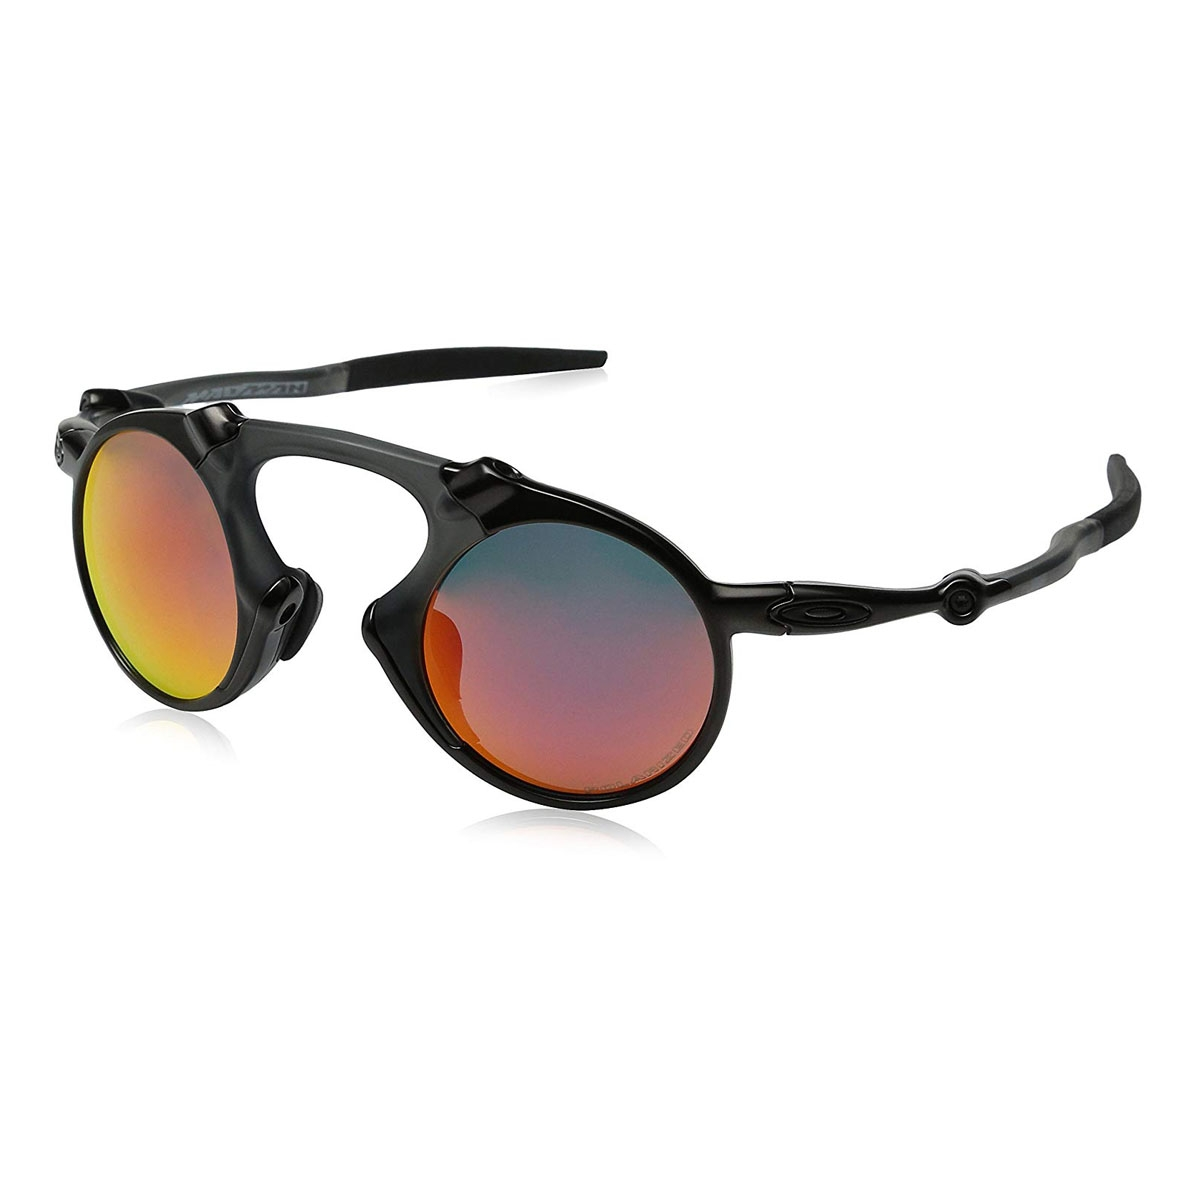 58636dd80d4 Image of Oakley Madman Polarized Sunglasses - Dark Carbon Frame Ruby Iridium  Polarized Lens